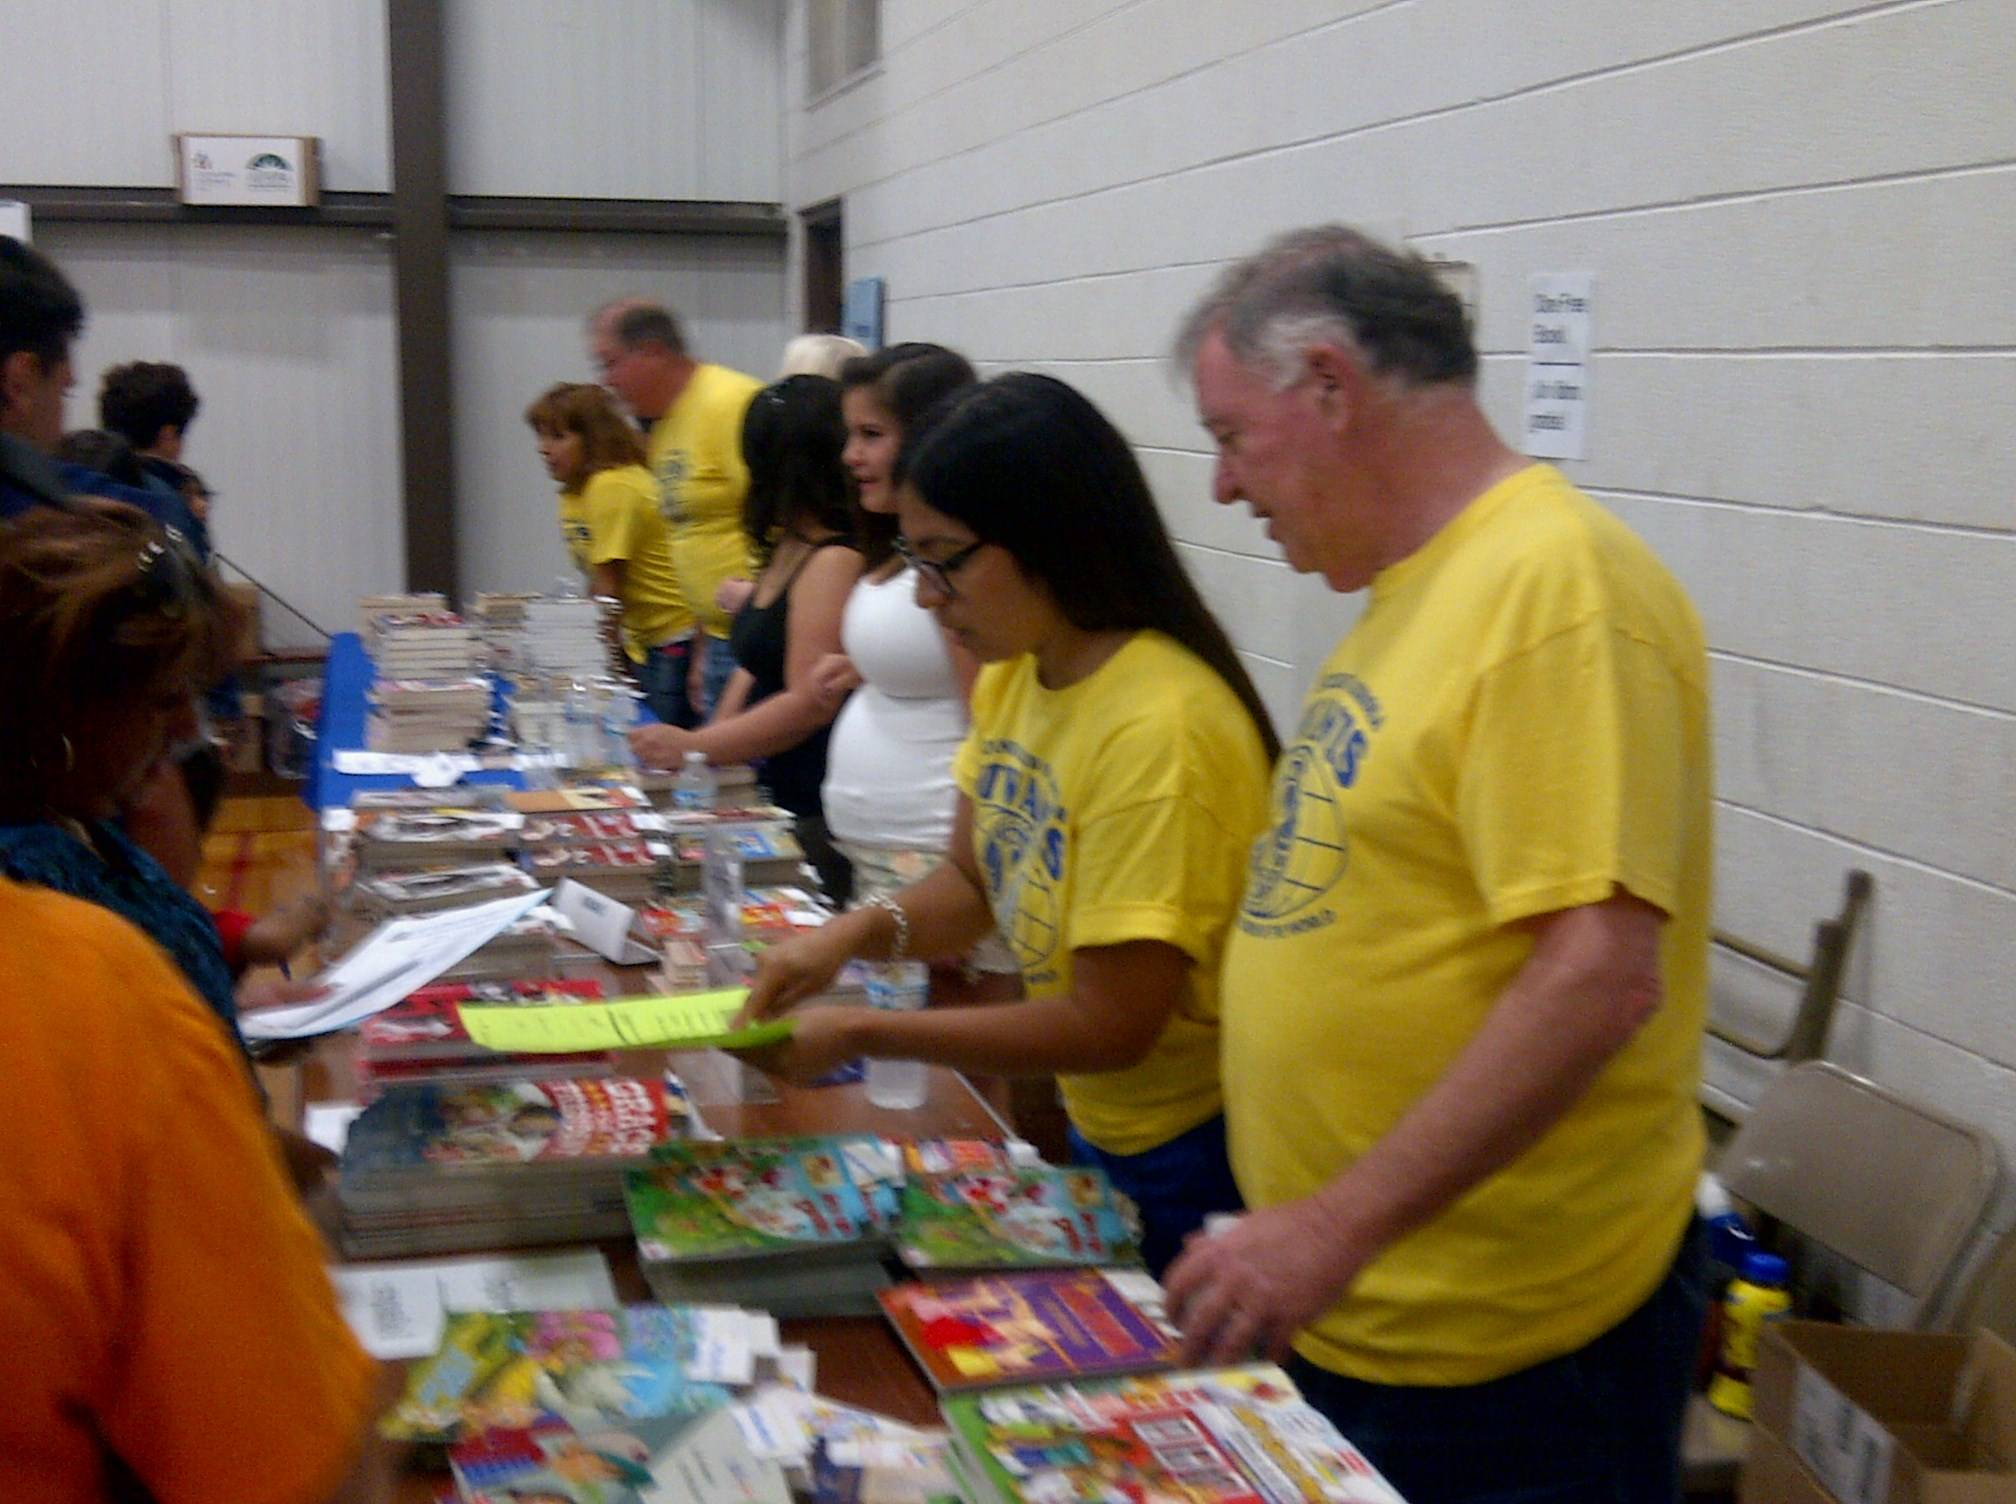 Kiwanis Club of Aurora members Father Ray Diesbourg and Christina Campos help distribute free children's books at Aurora's annual Project Unity/Communities in Schools Back-to-School Fair on Aug. 9.